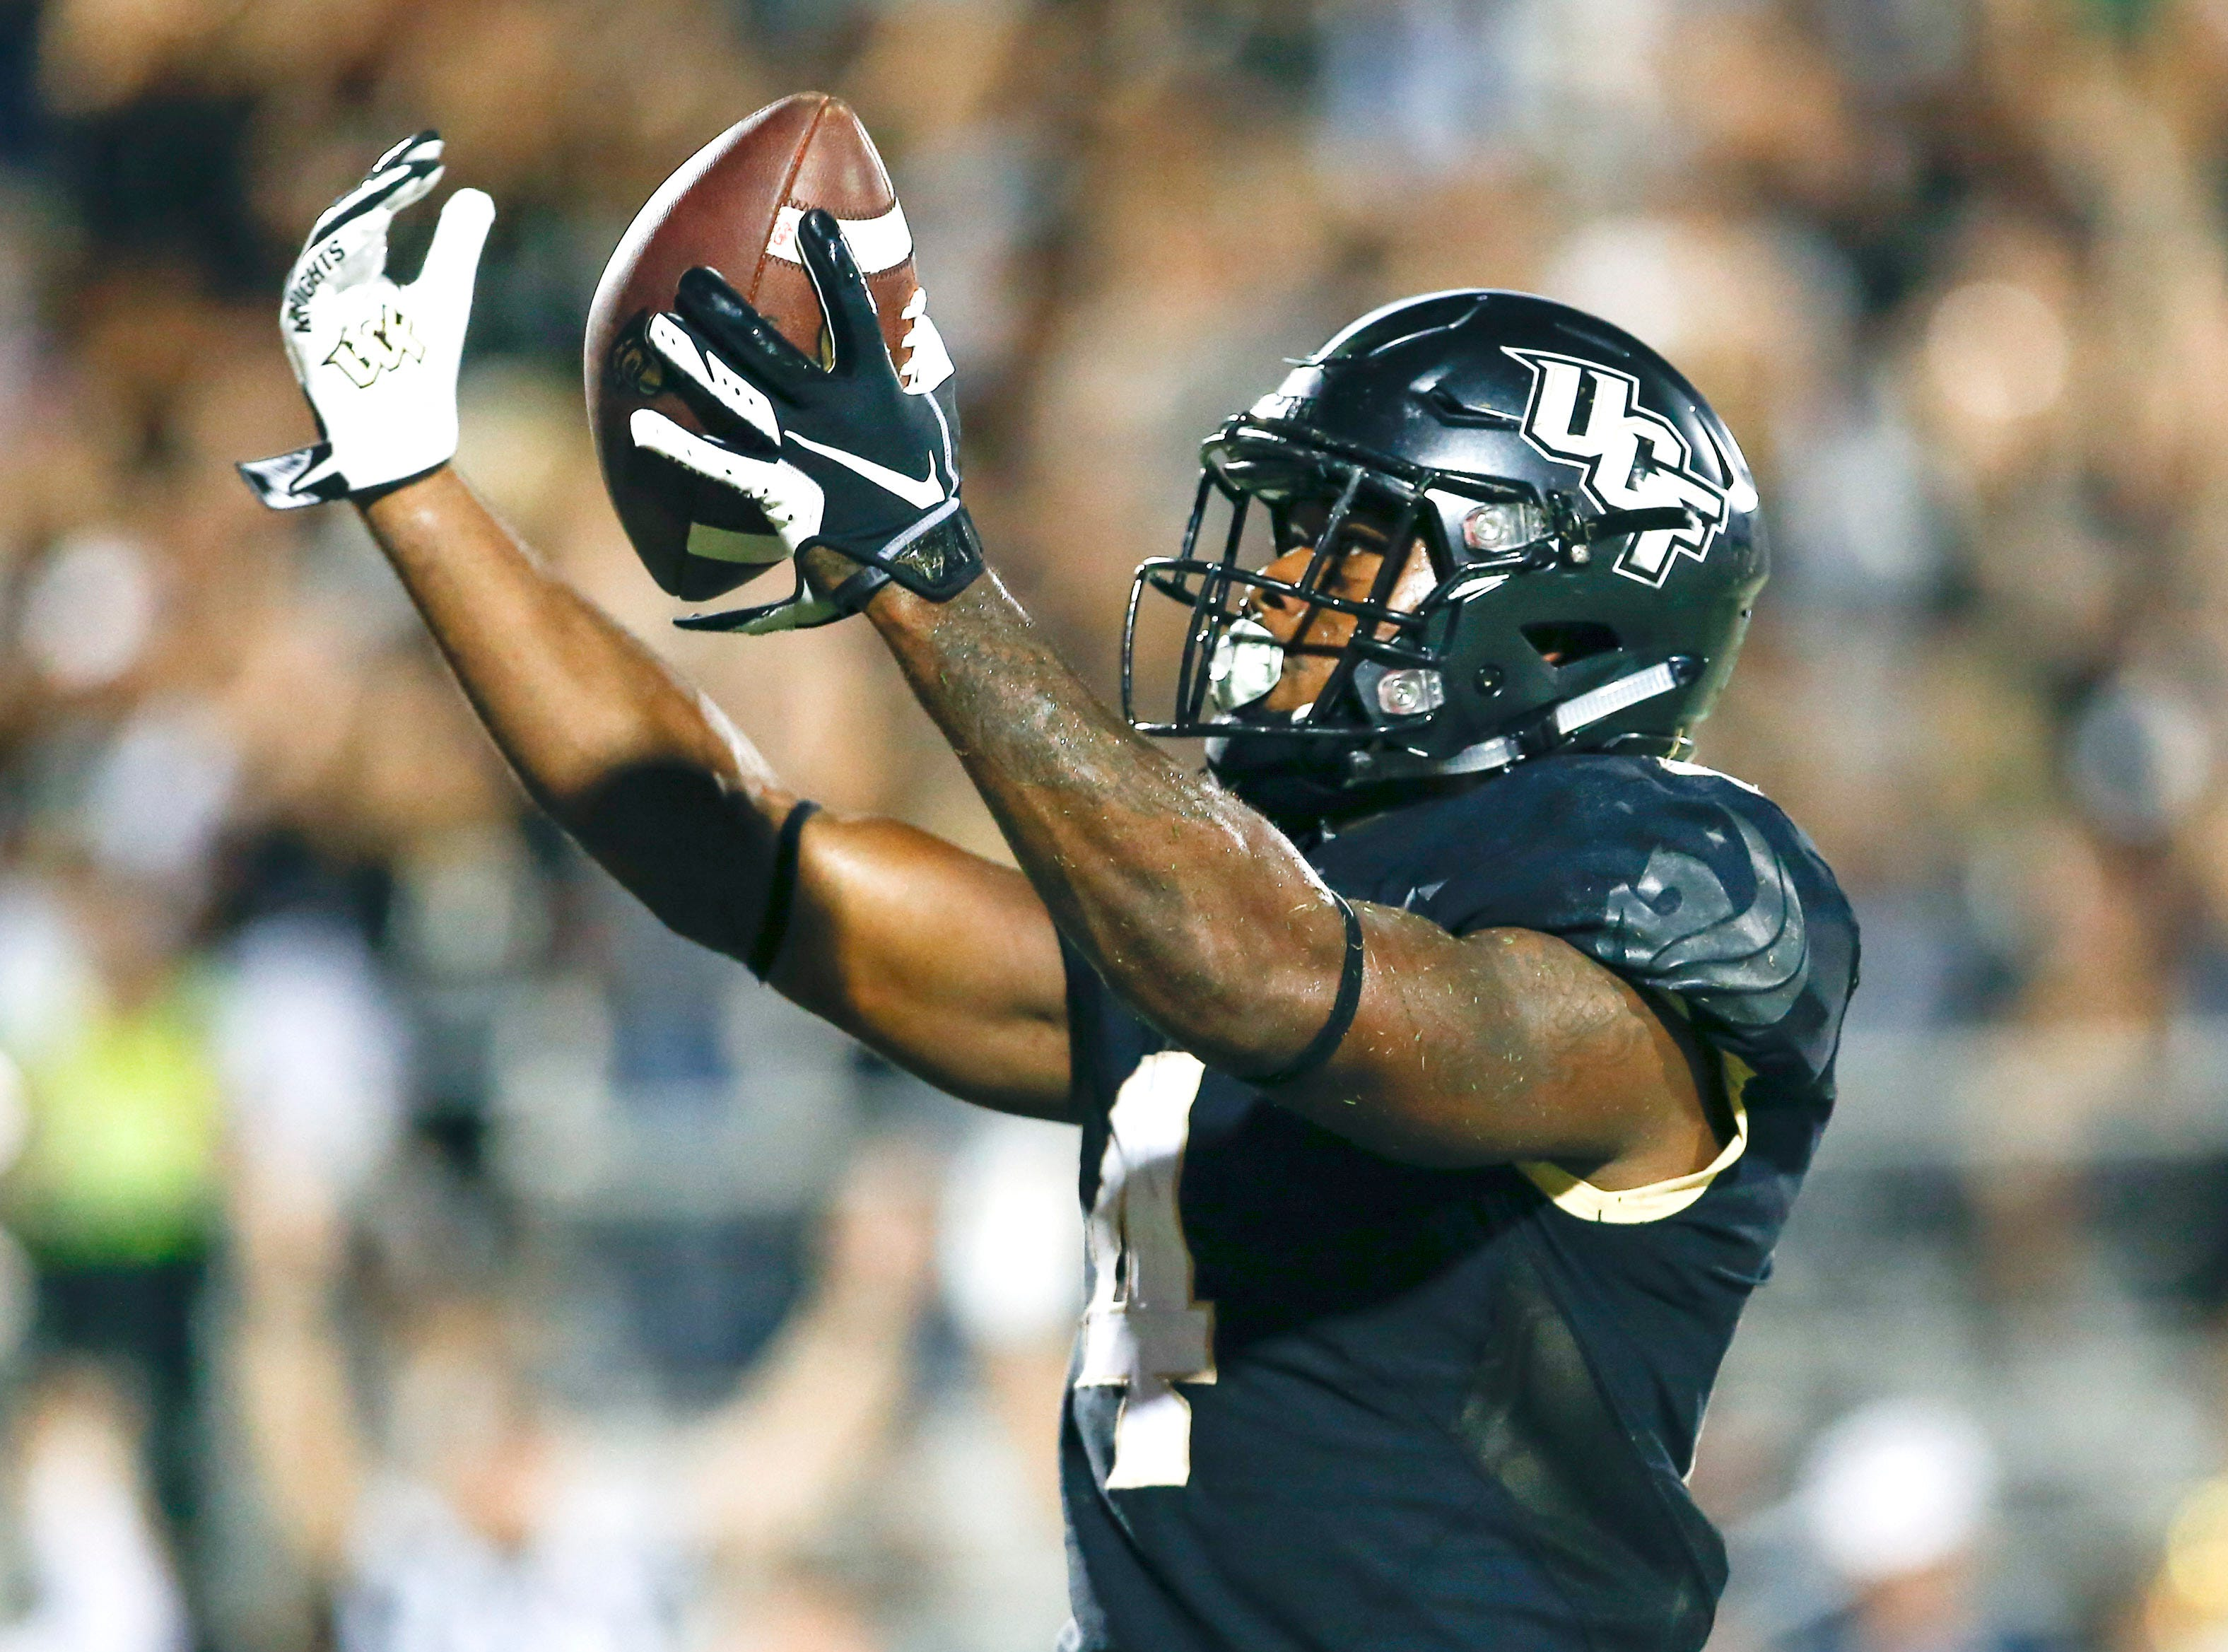 UCF Knights running back Taj McGowan (4) reacts after his rushing touchdown during the second half against the Florida Atlantic Owls at Spectrum Stadium.